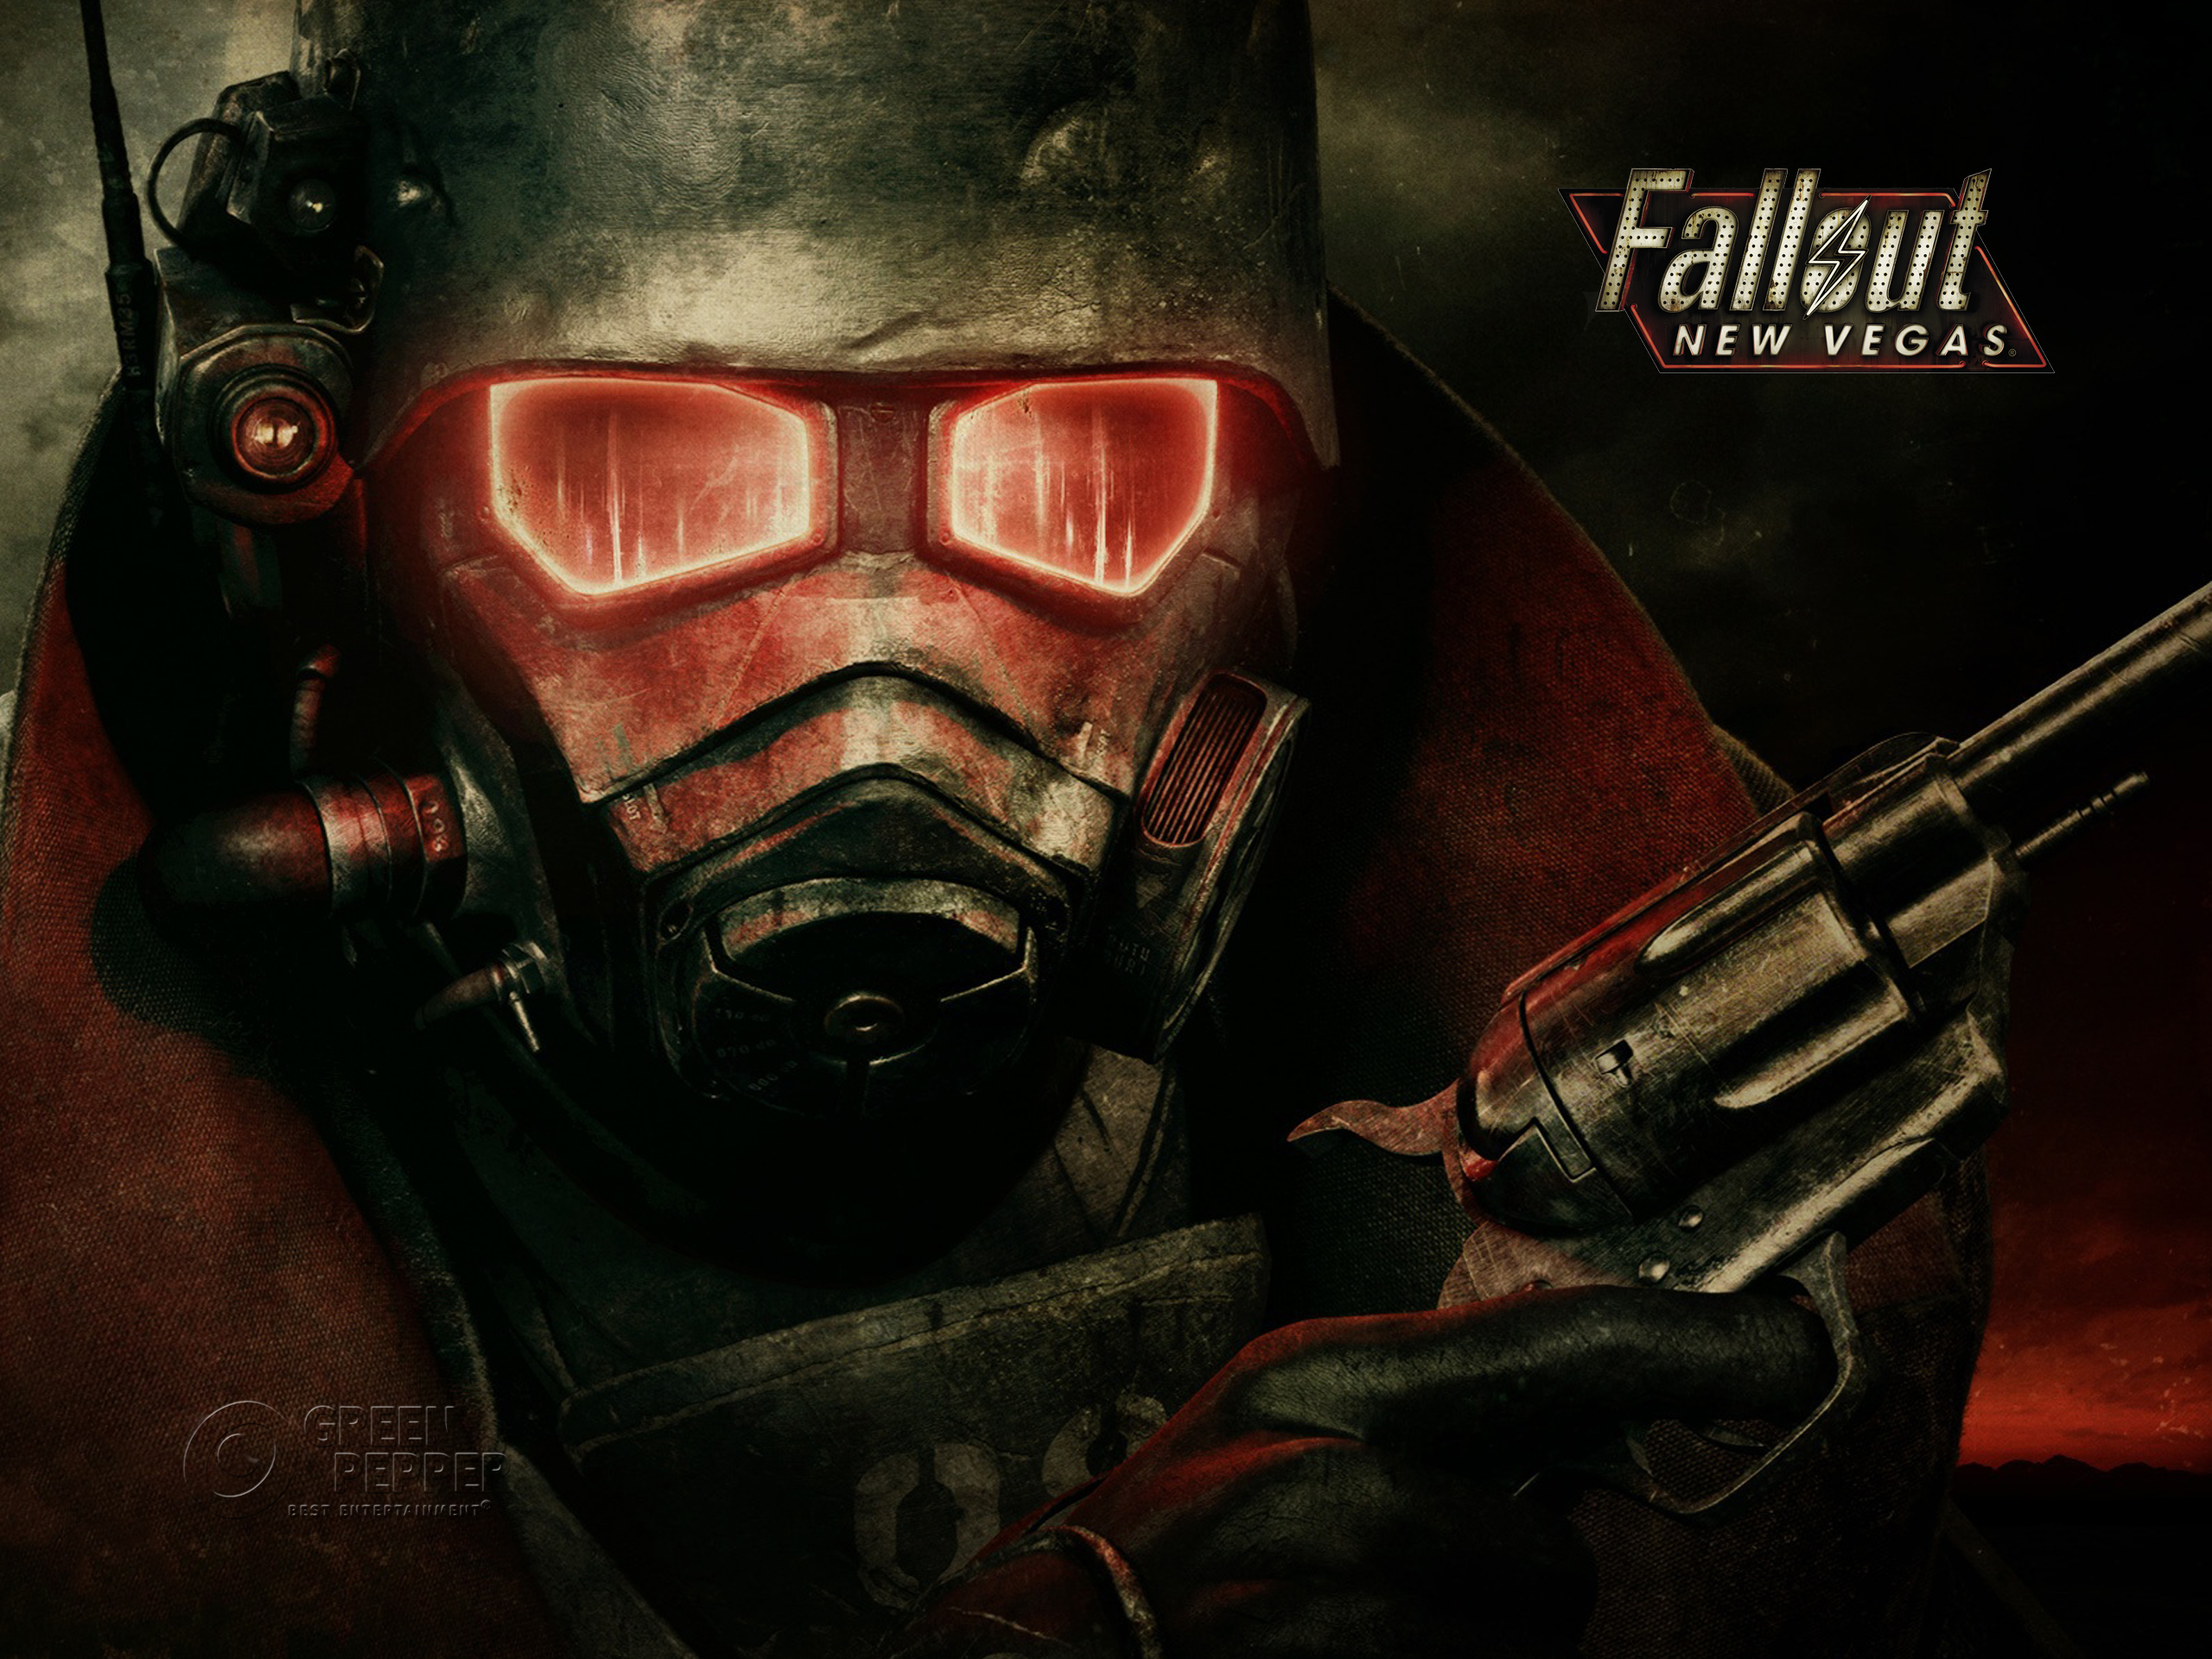 Fallout New Vegas 2010 Promotional Art Mobygames